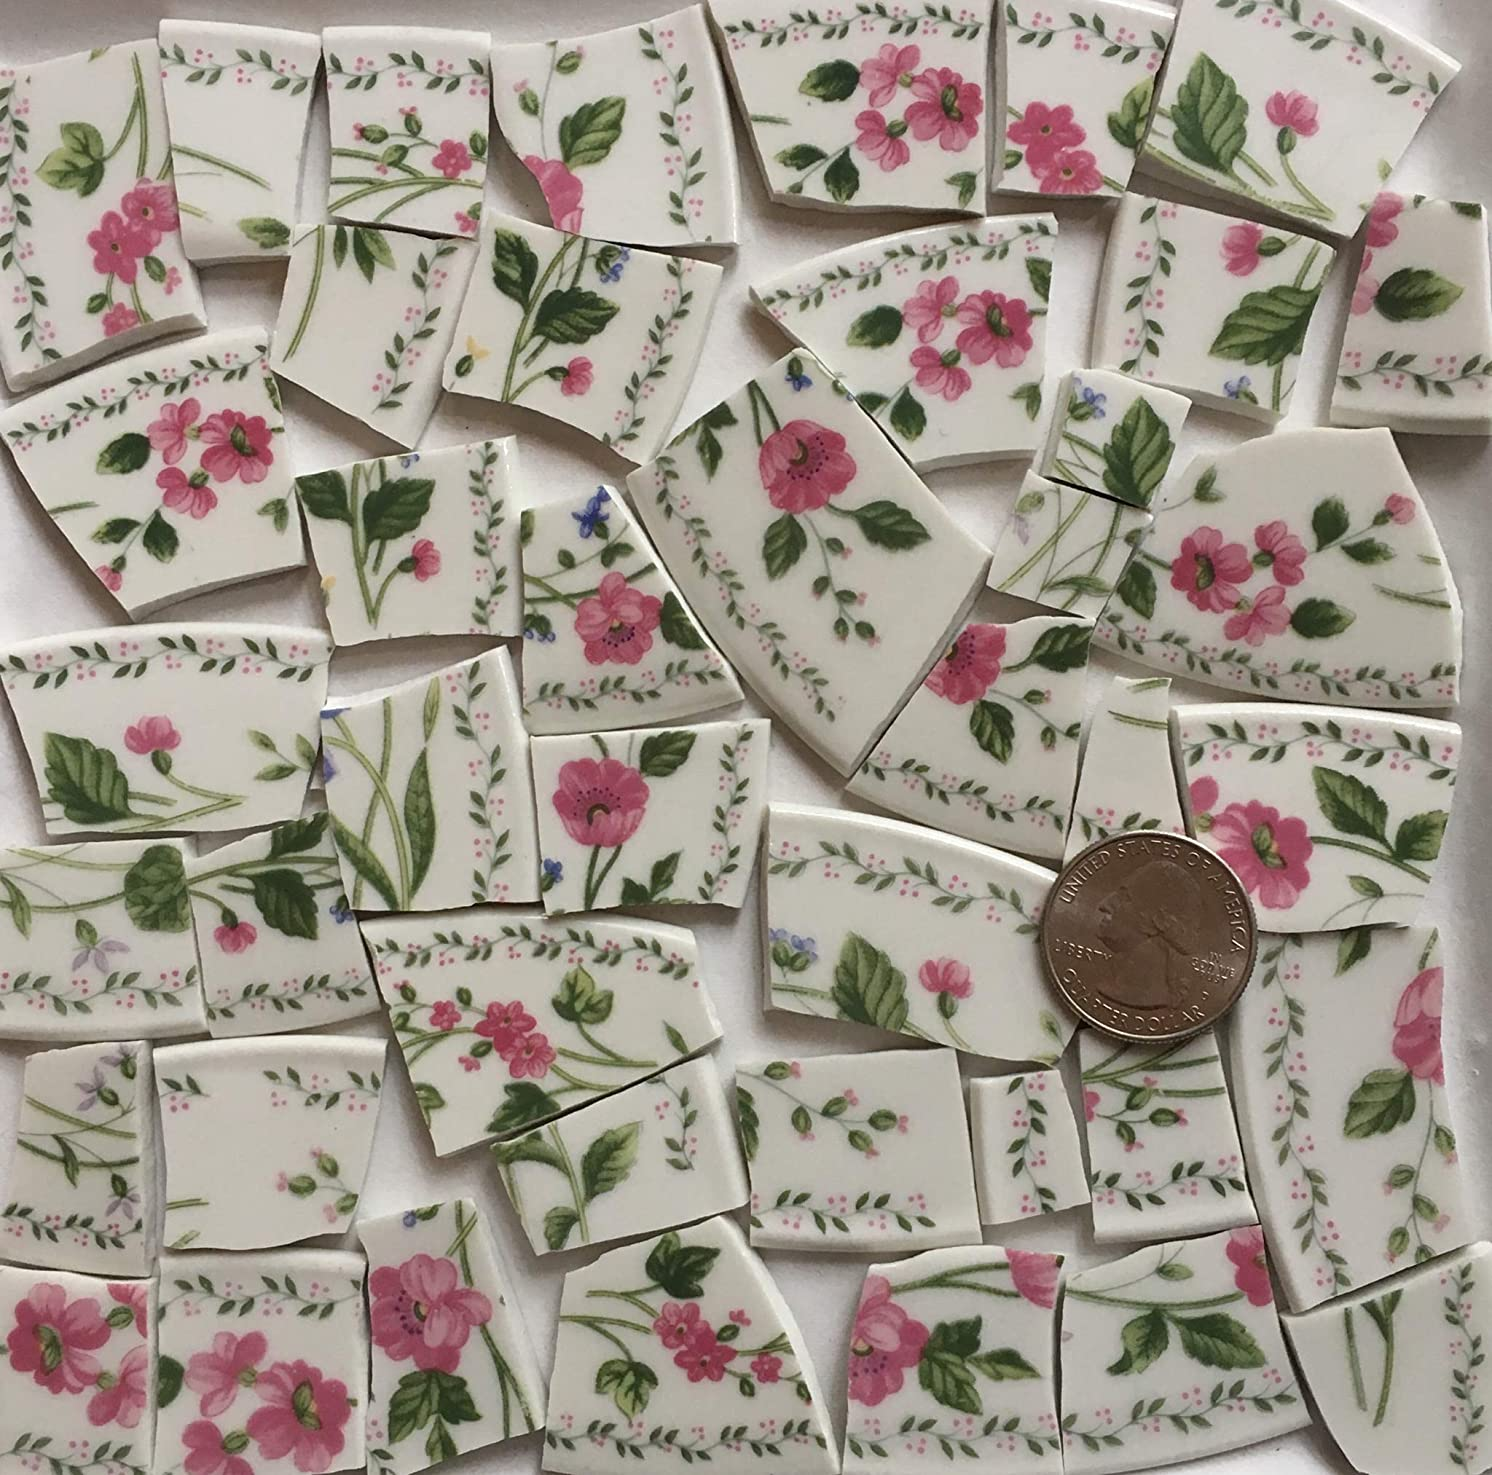 Mosaic Art & Craft Supply ~ Bright Pink Flowers on White China Tiles (T#978)